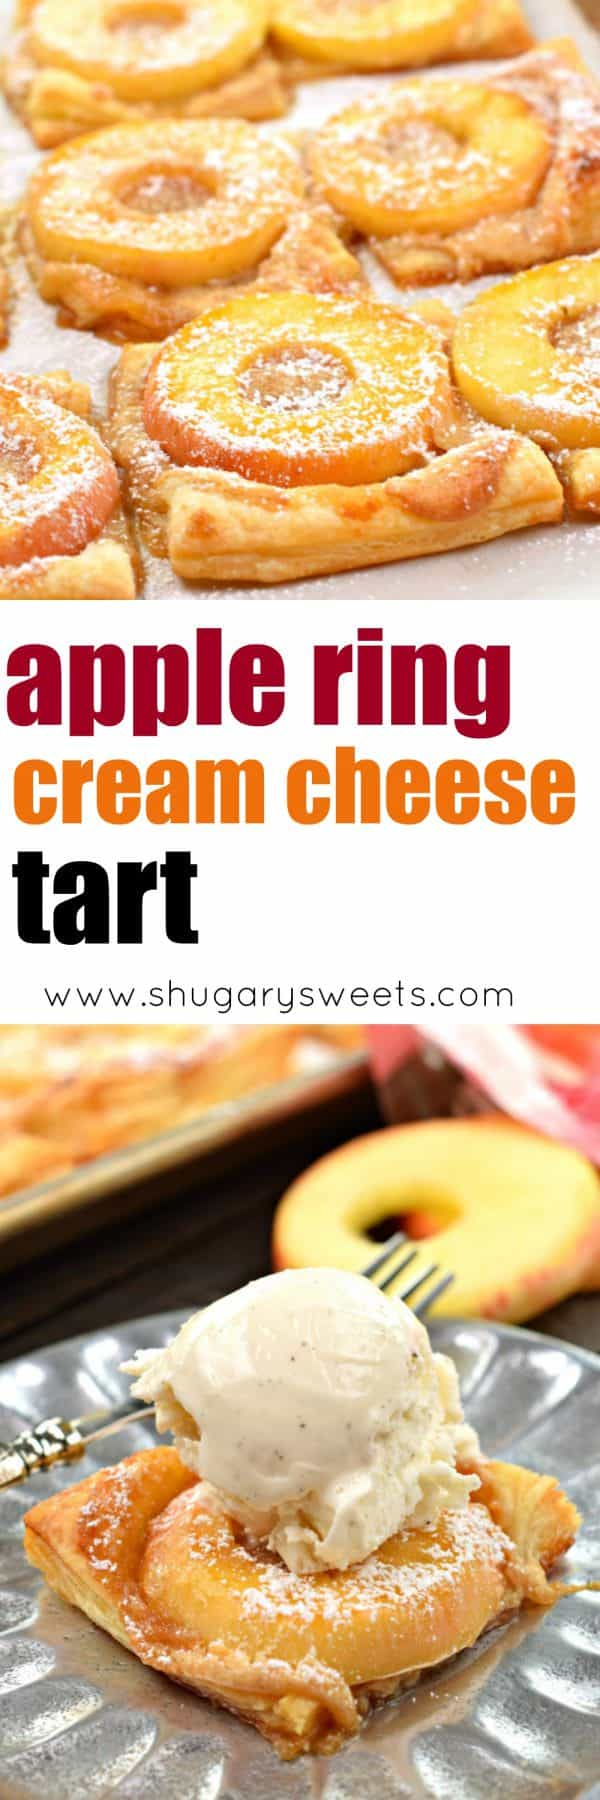 This Apple Cream Cheese Tart highlights the flavors of the holidays with an enticing combination of apples, nutmeg, and rum extract! Impressive to look at, easy to make!